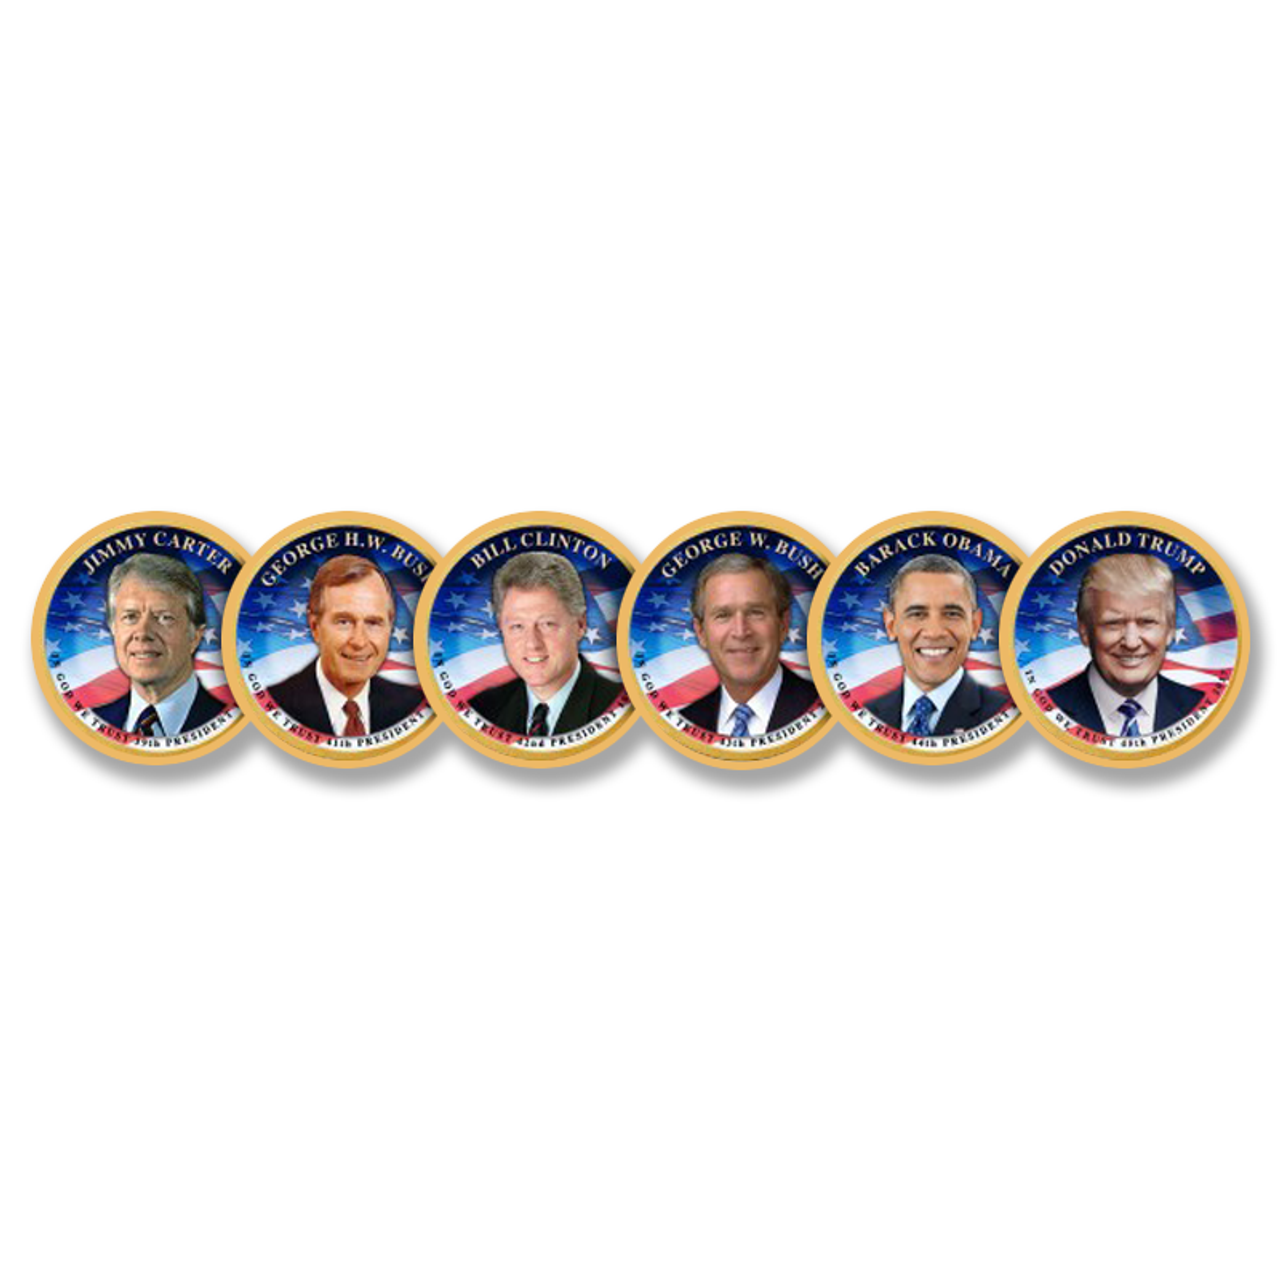 The Full-Color Living Presidents $1 Dollar Collection